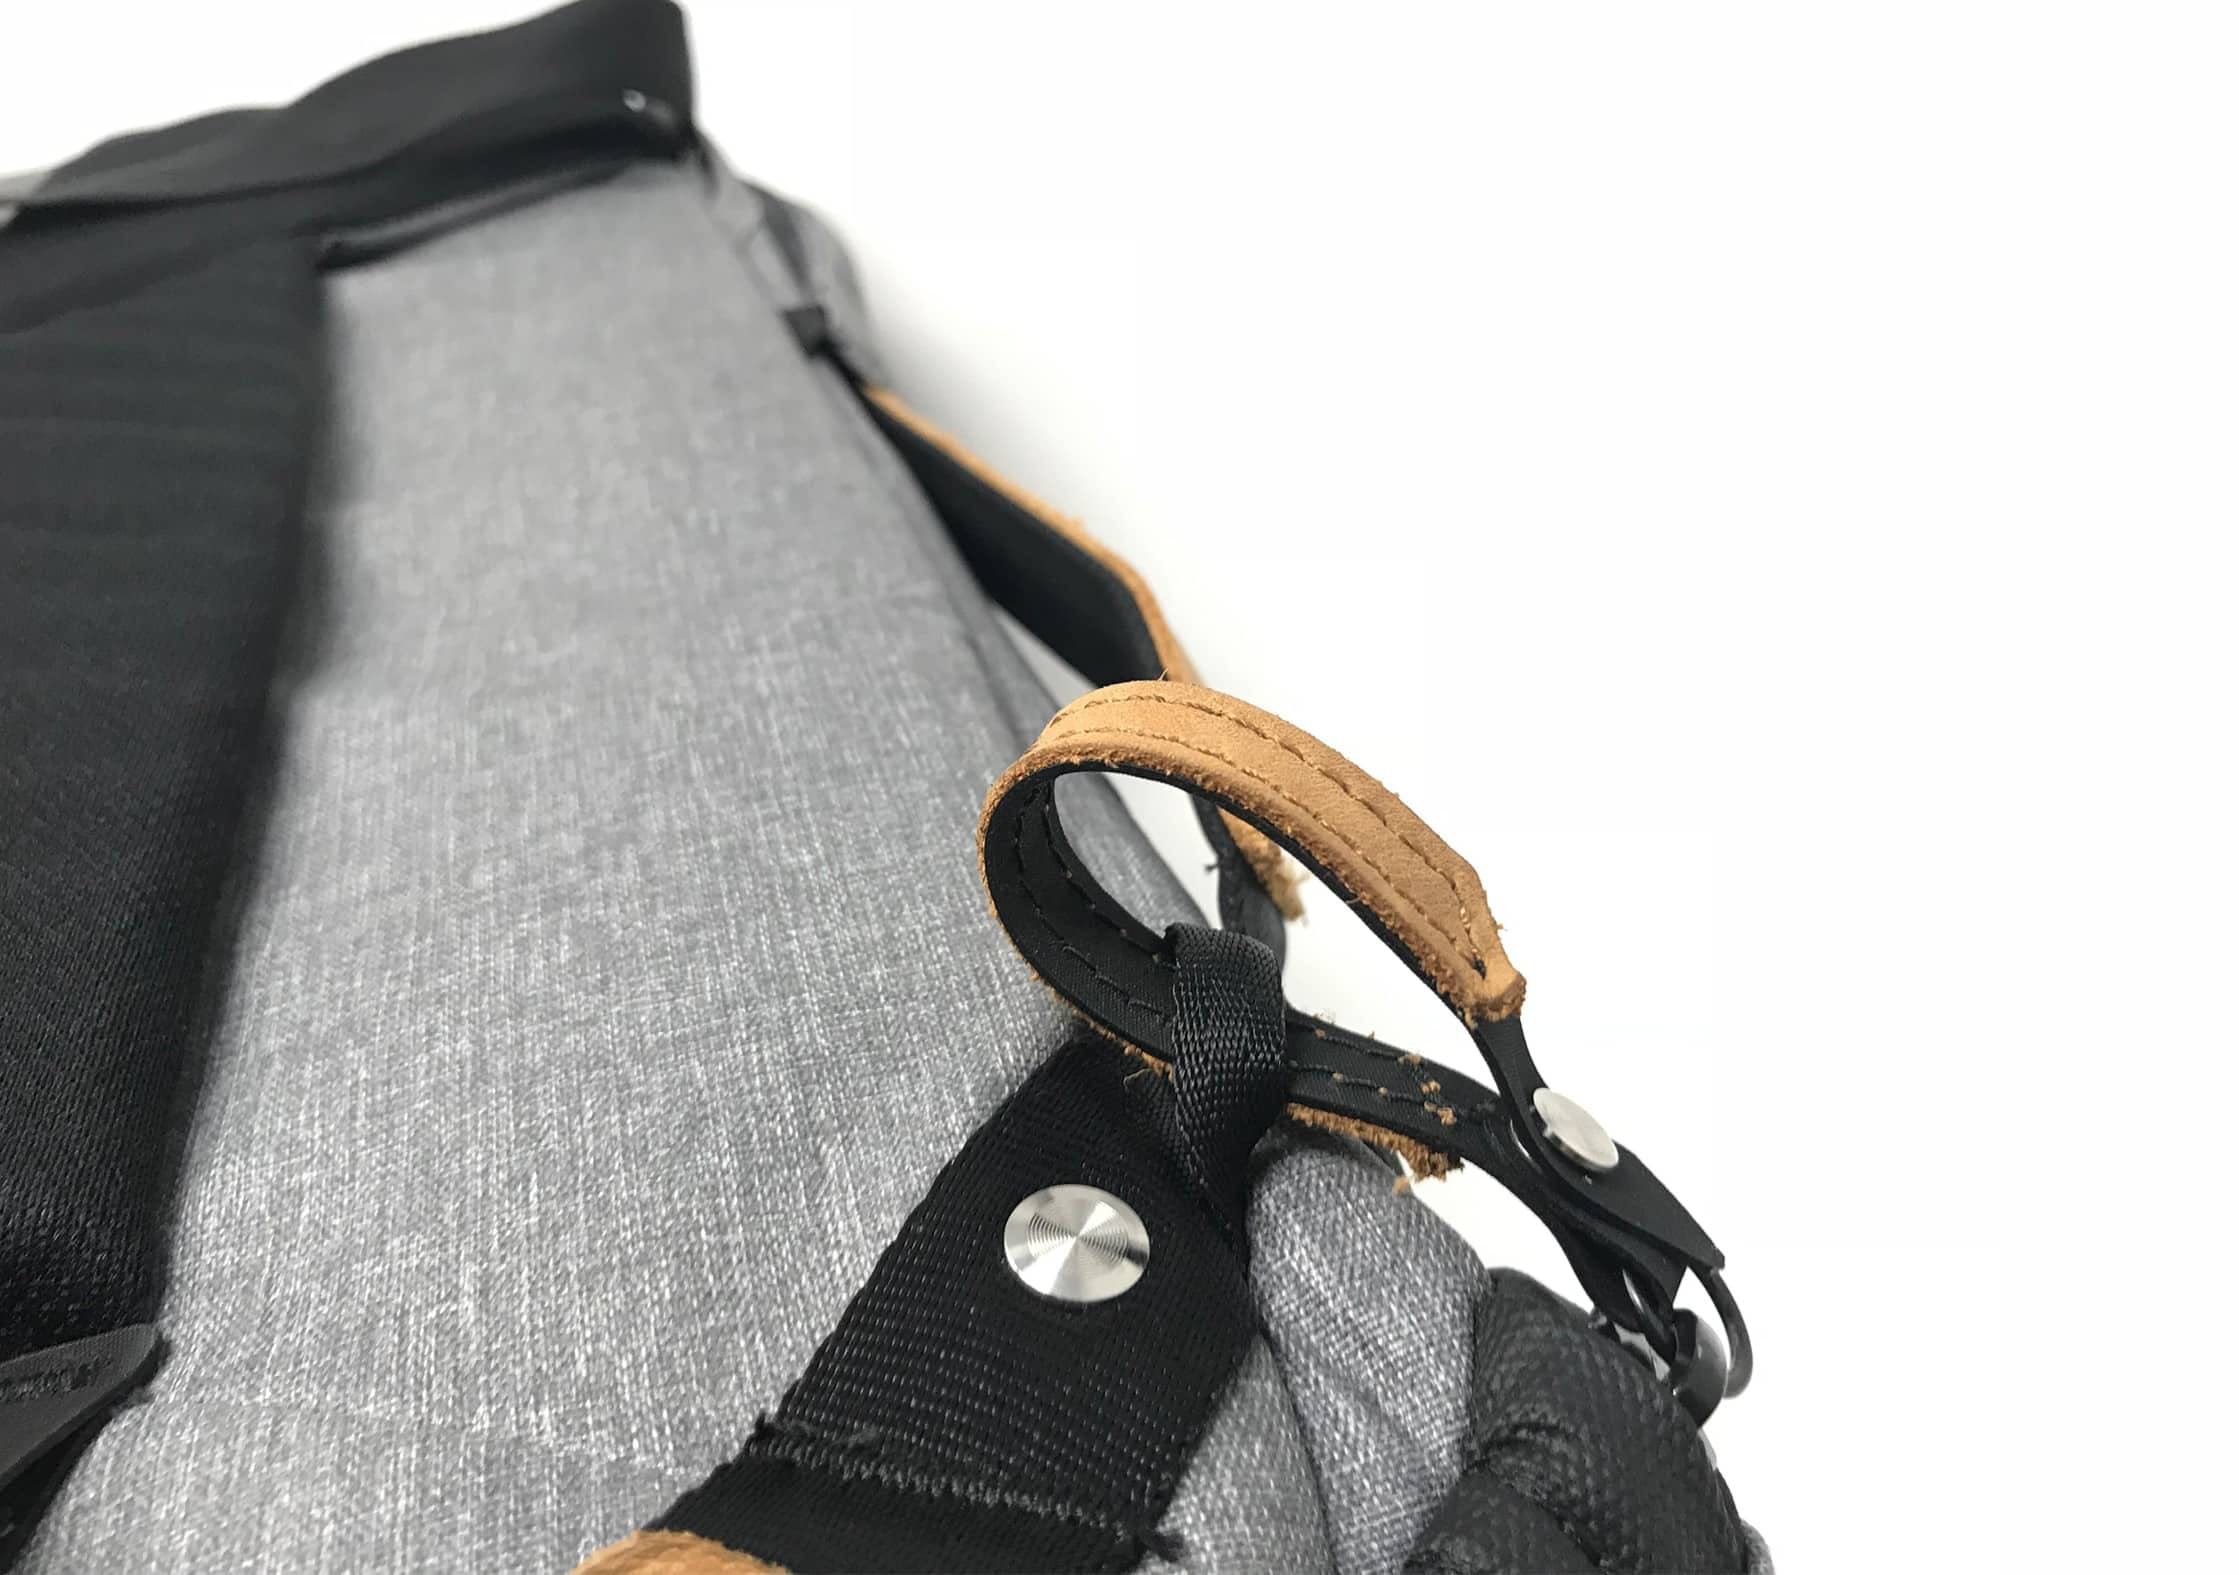 Peak Design Everyday Backpack zipper locks.